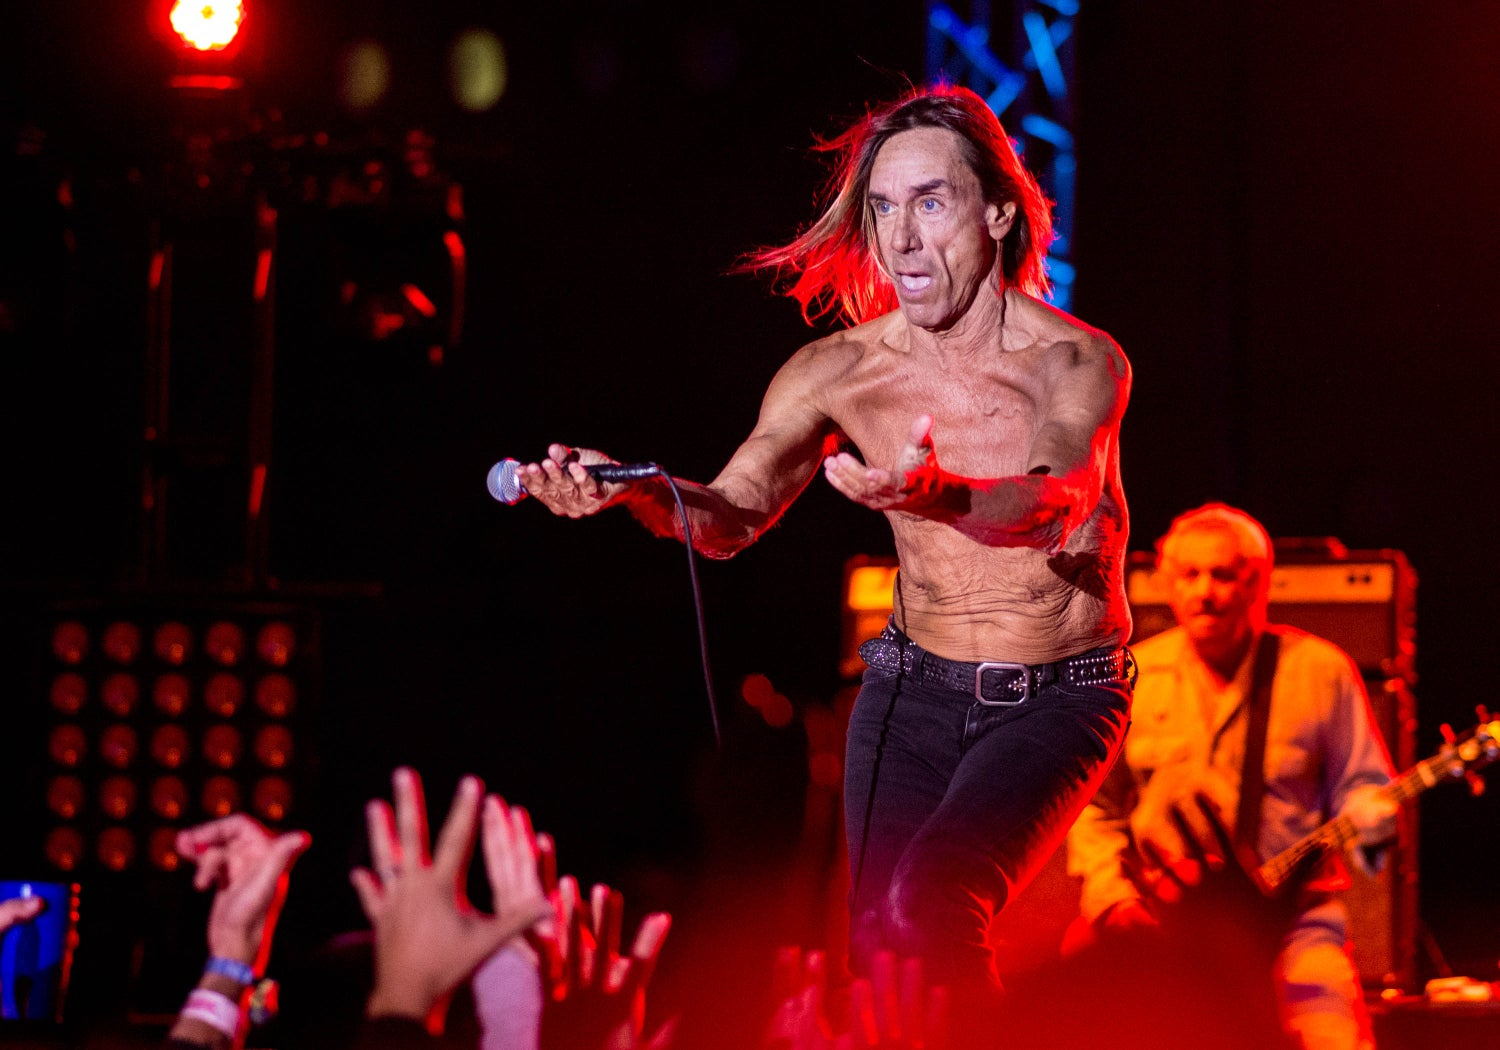 Image of Iggy and the Stooges limited edition photo